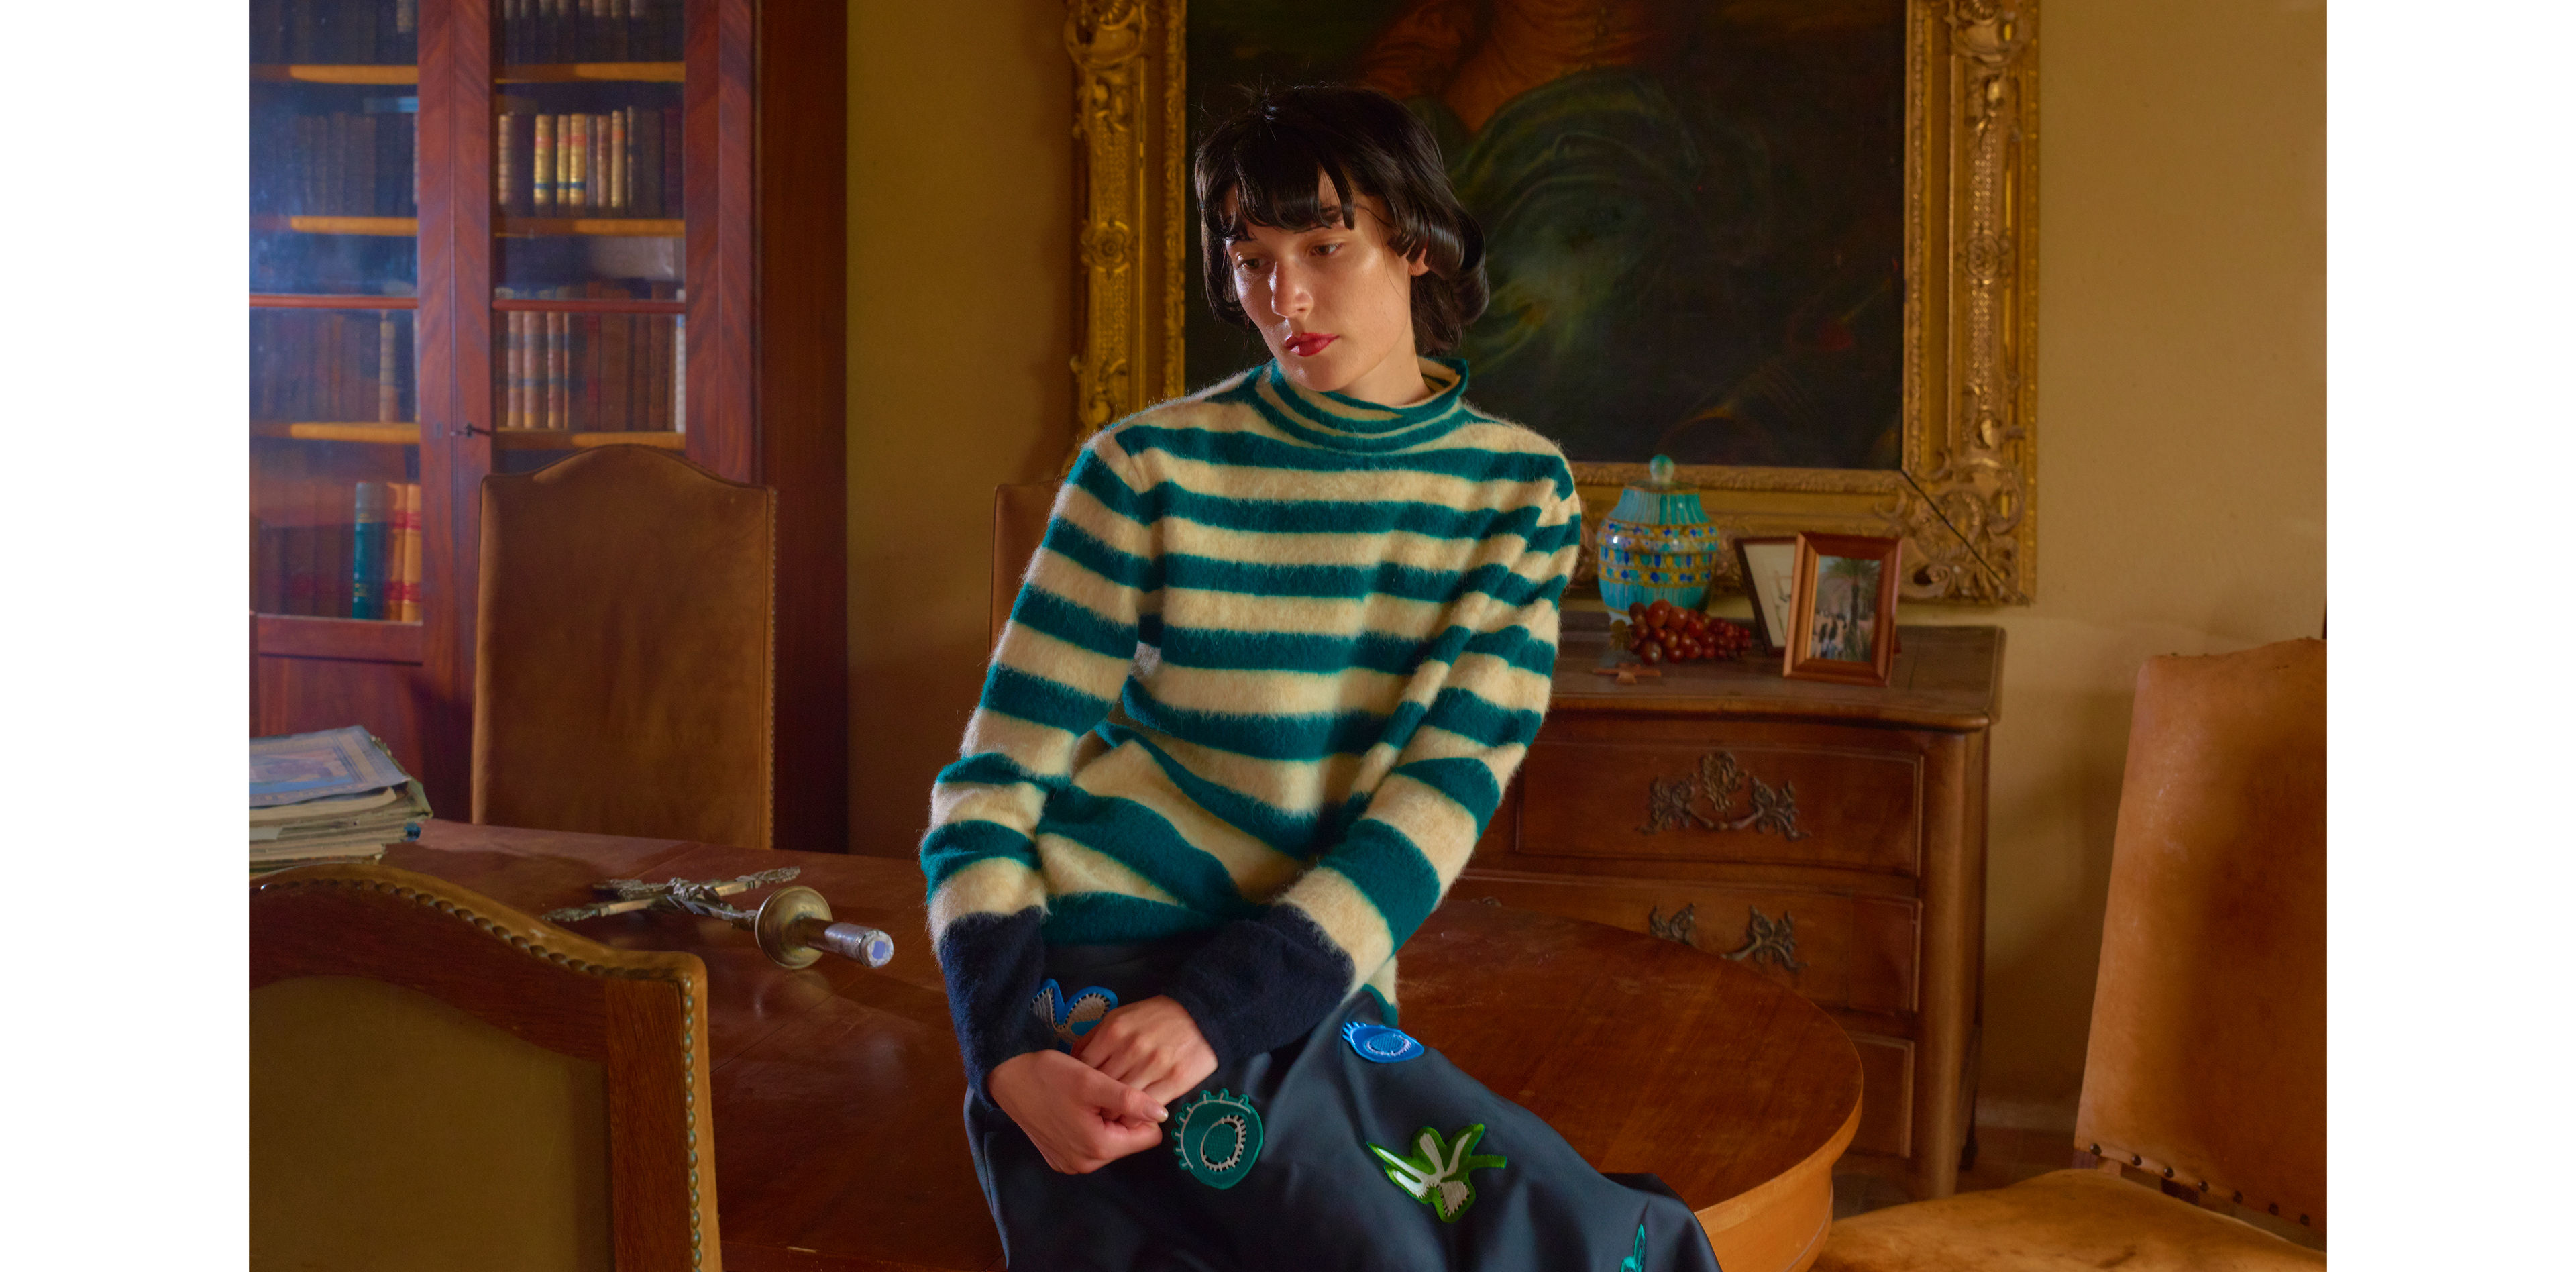 Model wears a green and white striped sweater in an alpaca-wool blend with a black skirt with appliqué details